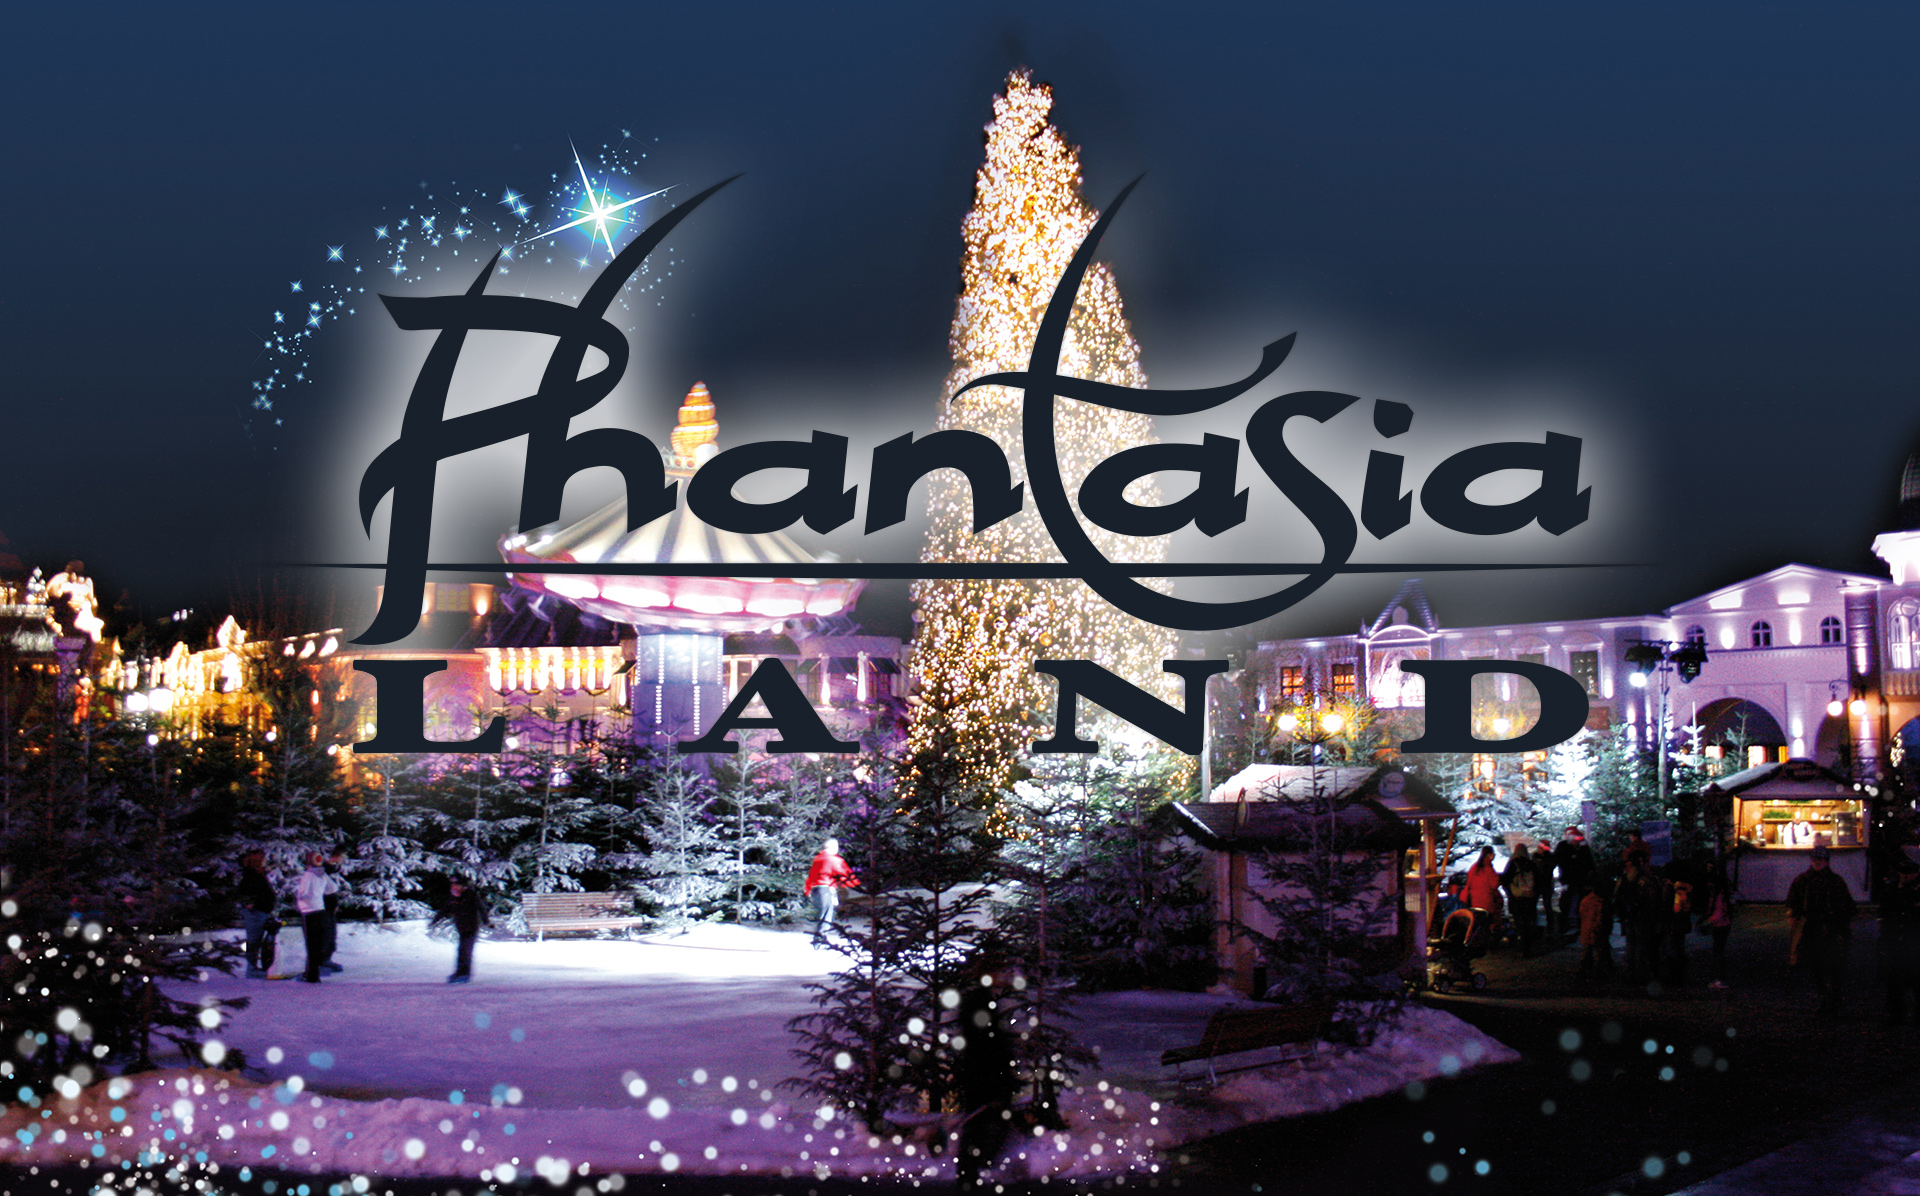 phantasialand wintertraum 2014 15 attraktionen preise und ffnungszeiten. Black Bedroom Furniture Sets. Home Design Ideas